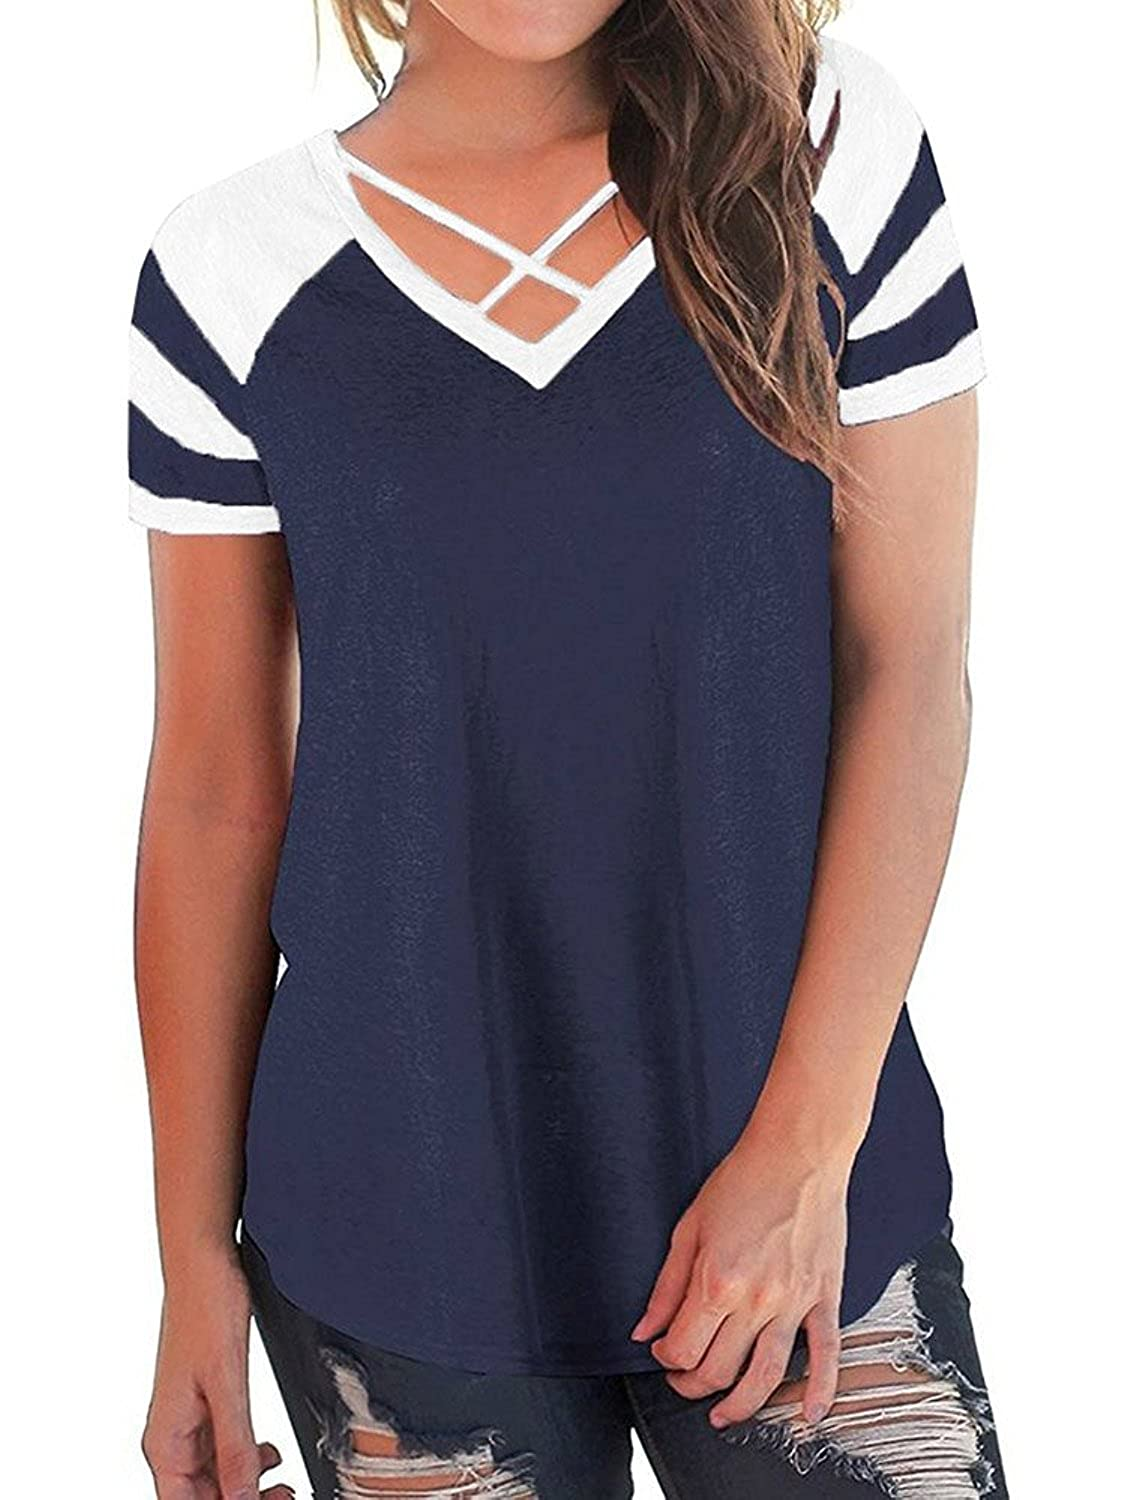 86218ff9ad4 Feature: Short sleeve shirt, criss cross v neckline, sleeve with color  block stripes patchwork, loose baseball tees for womens